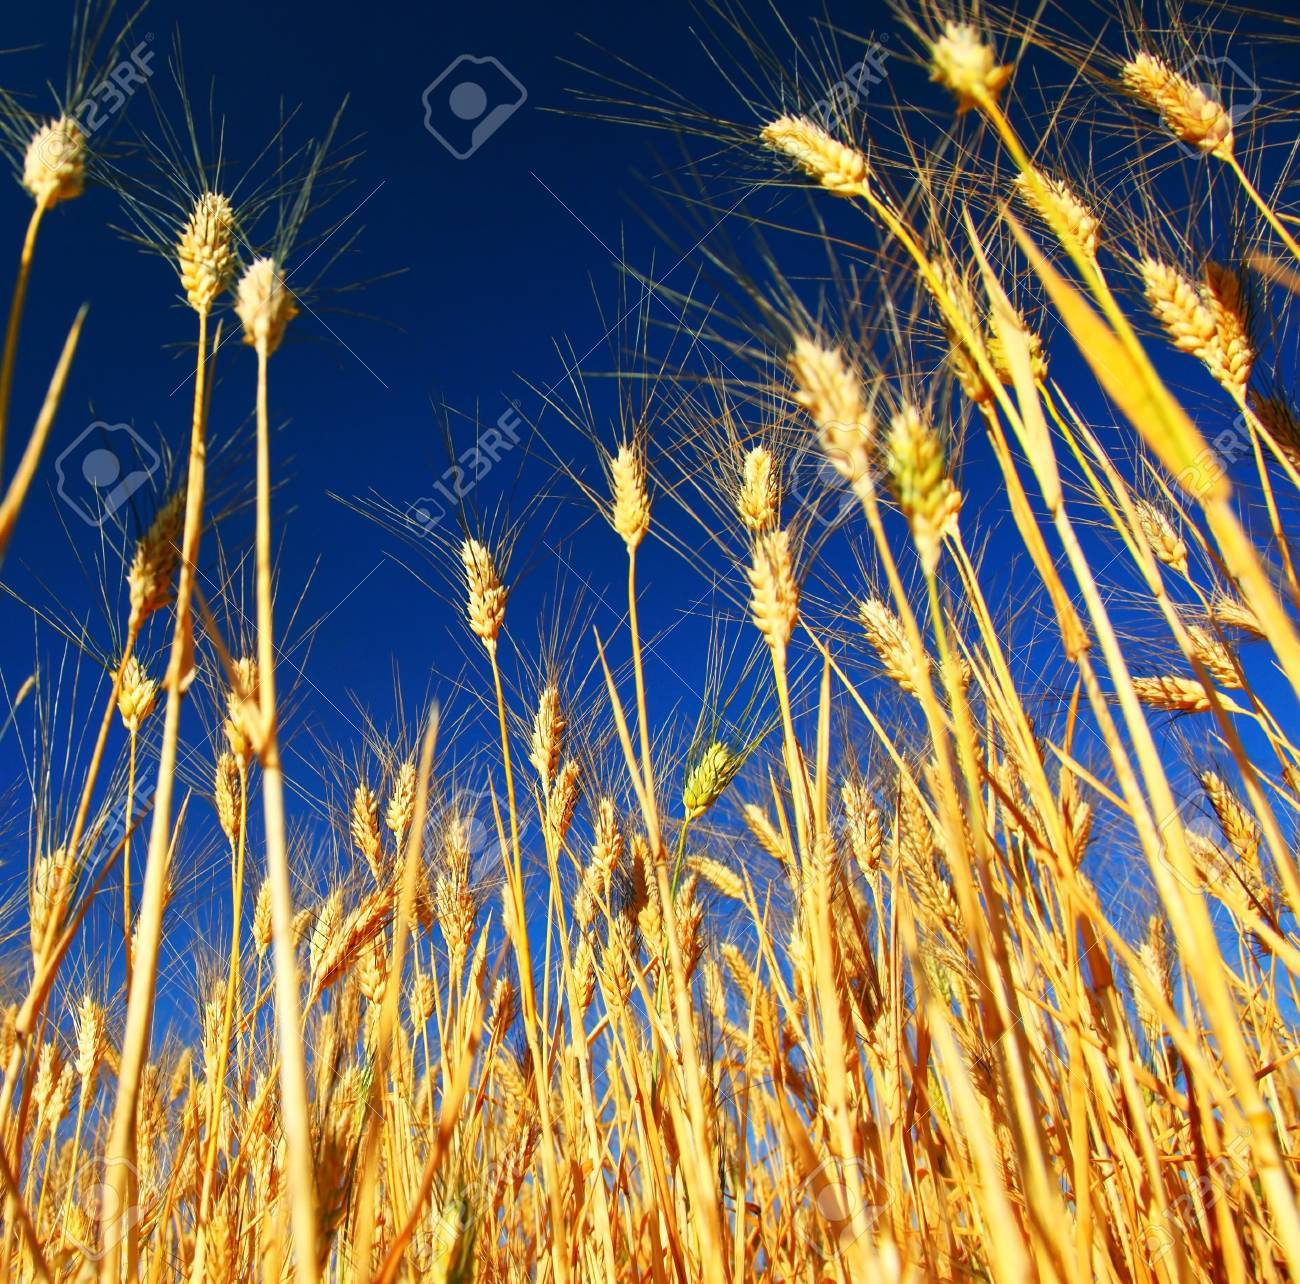 Wheat field landscape closeup on rye over blue sky Stock Photo - 7585605